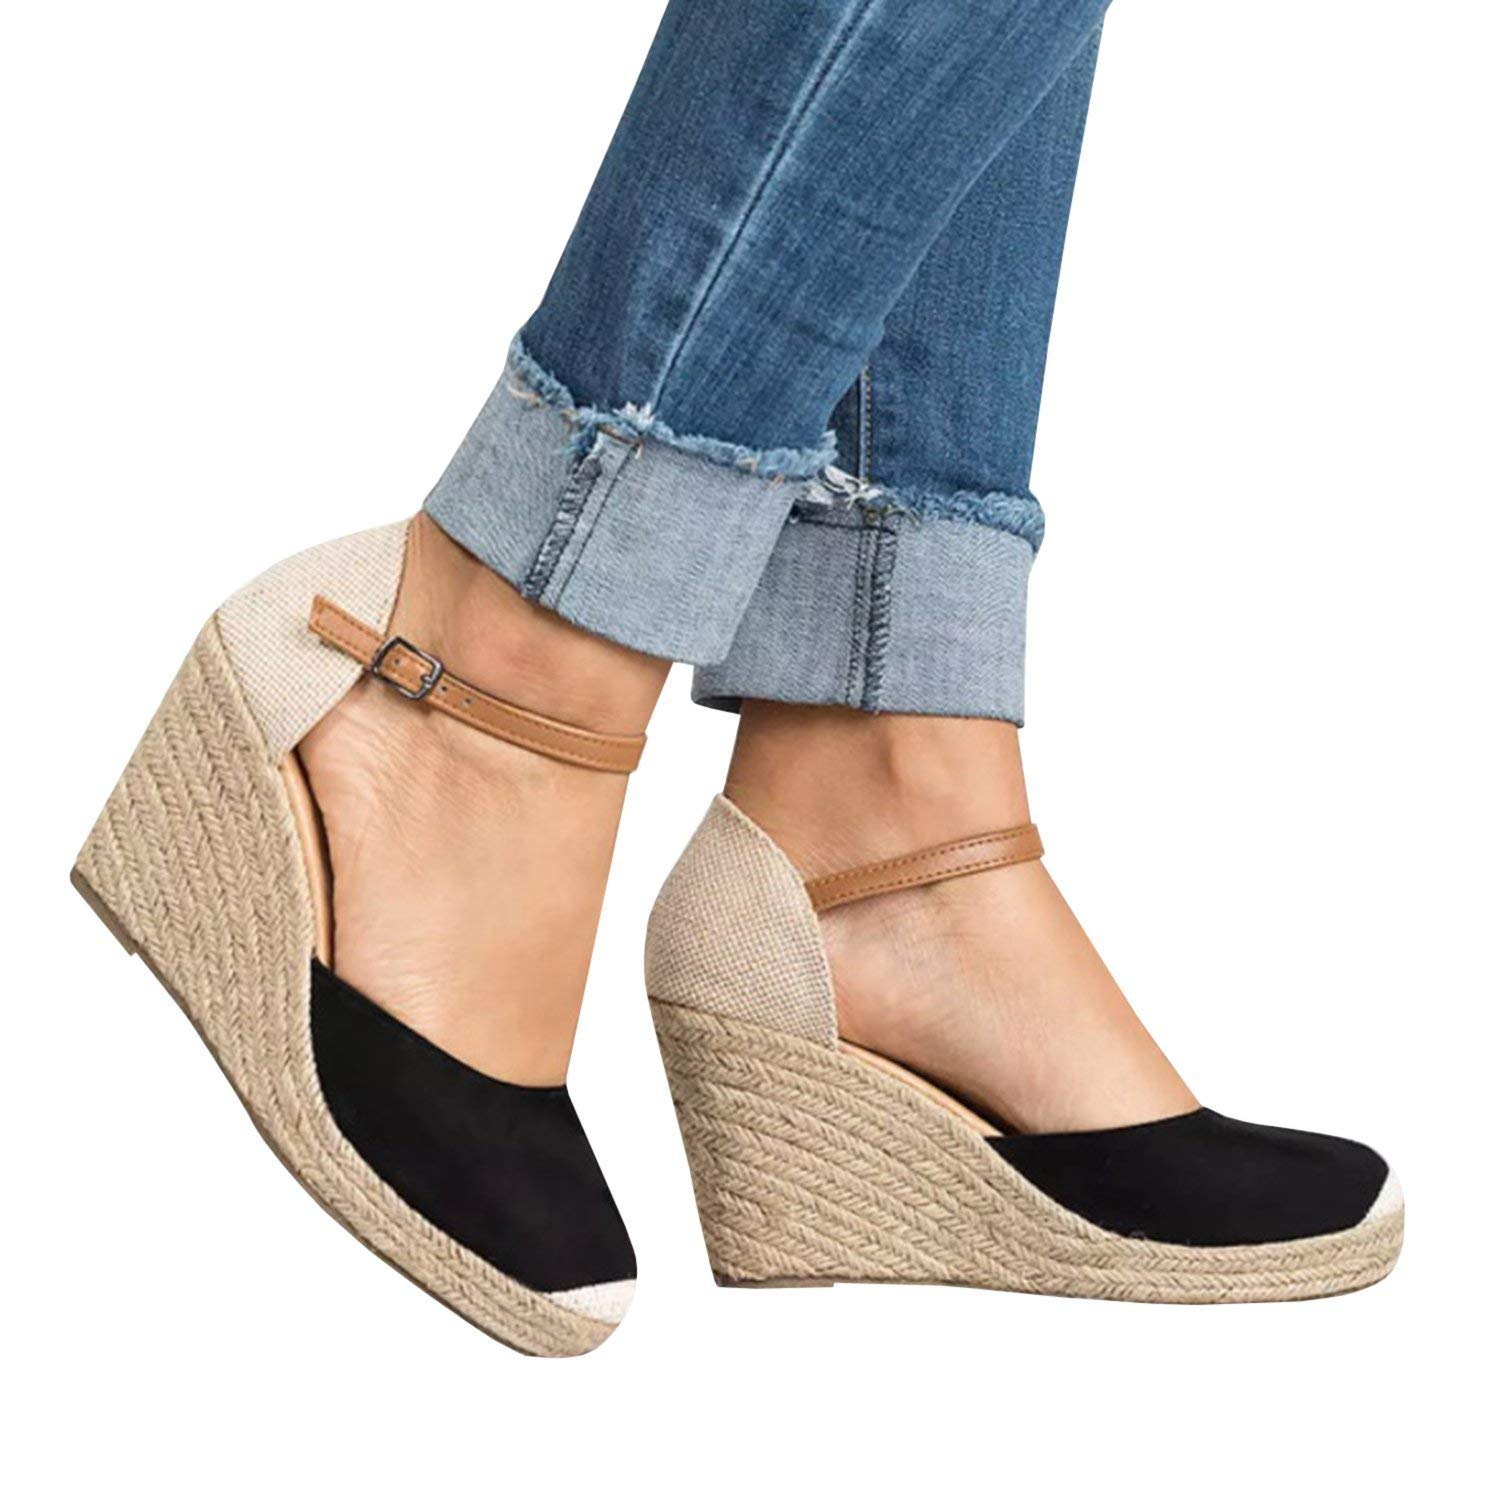 524430582bc Cheap Platform Espadrille Sandals, find Platform Espadrille Sandals ...